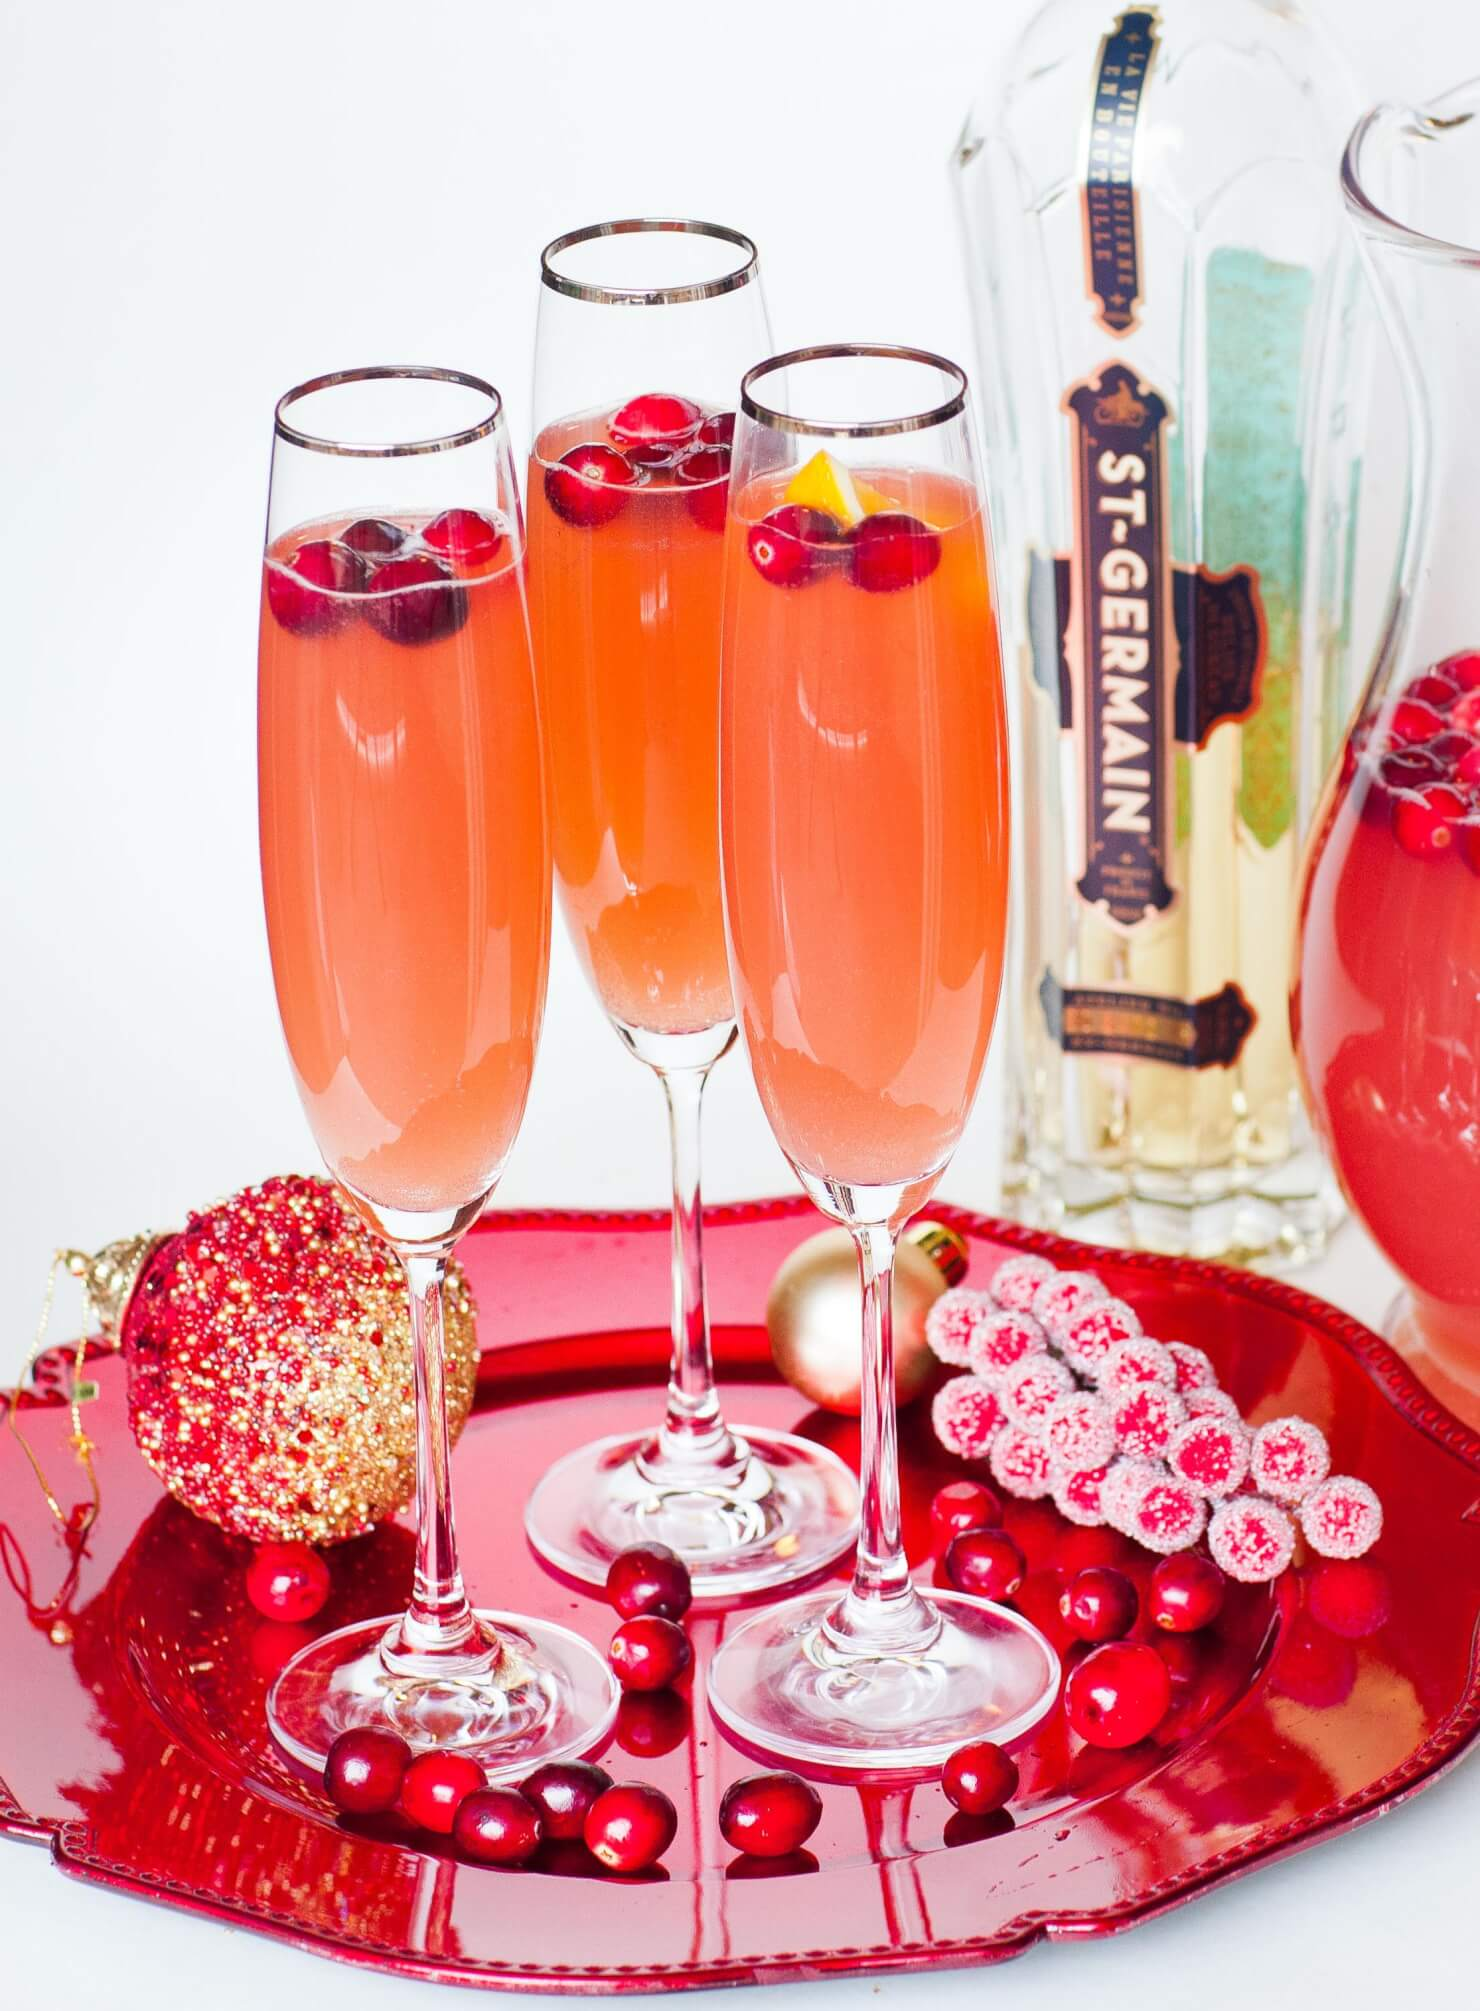 Sparkling Cranberry Punch Tatyanas Everyday Food